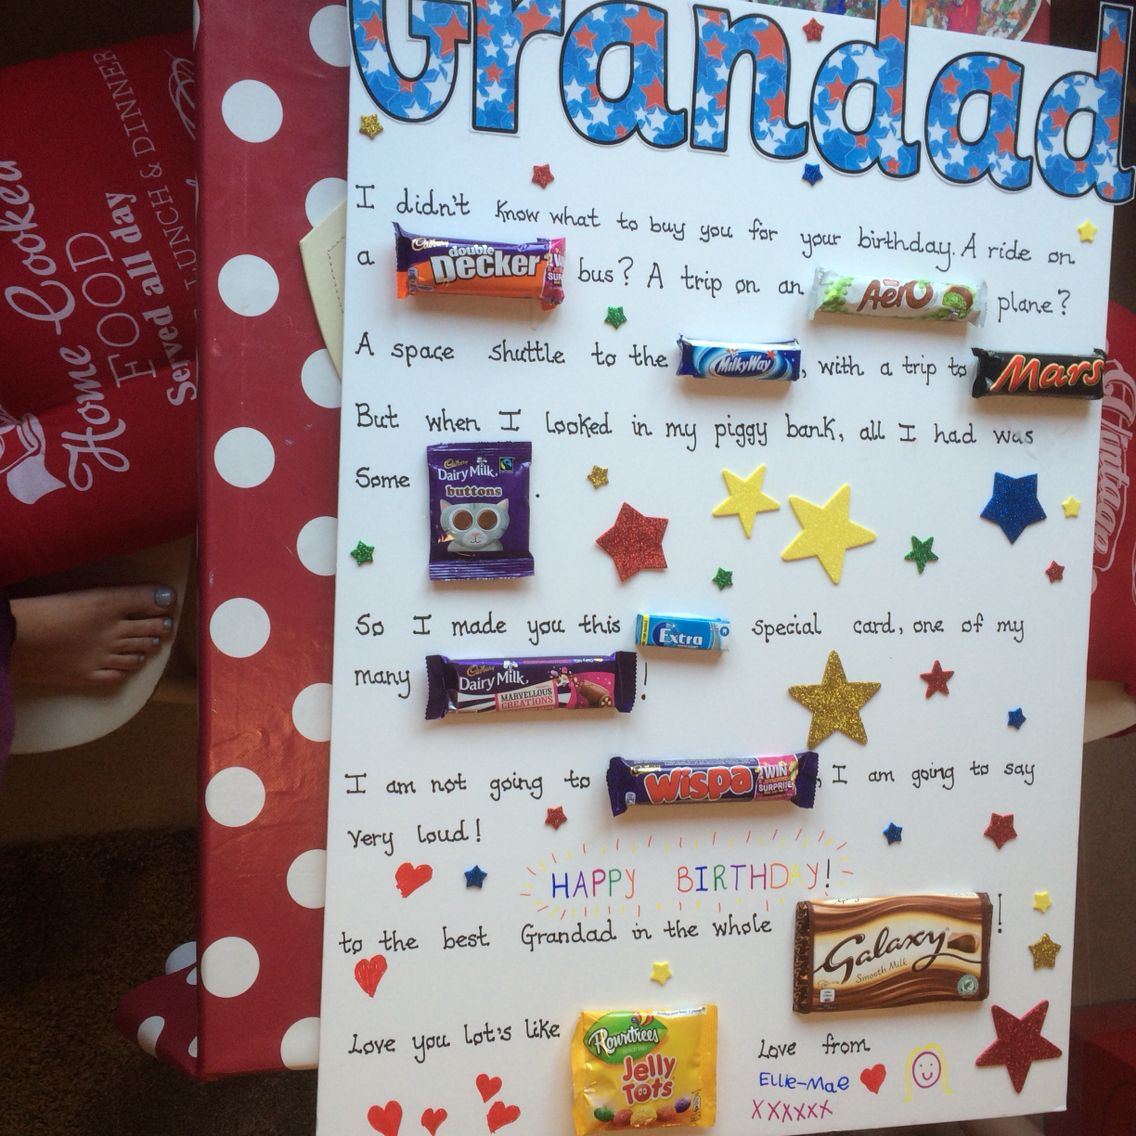 Grandad Diy Chocolate Birthday Card